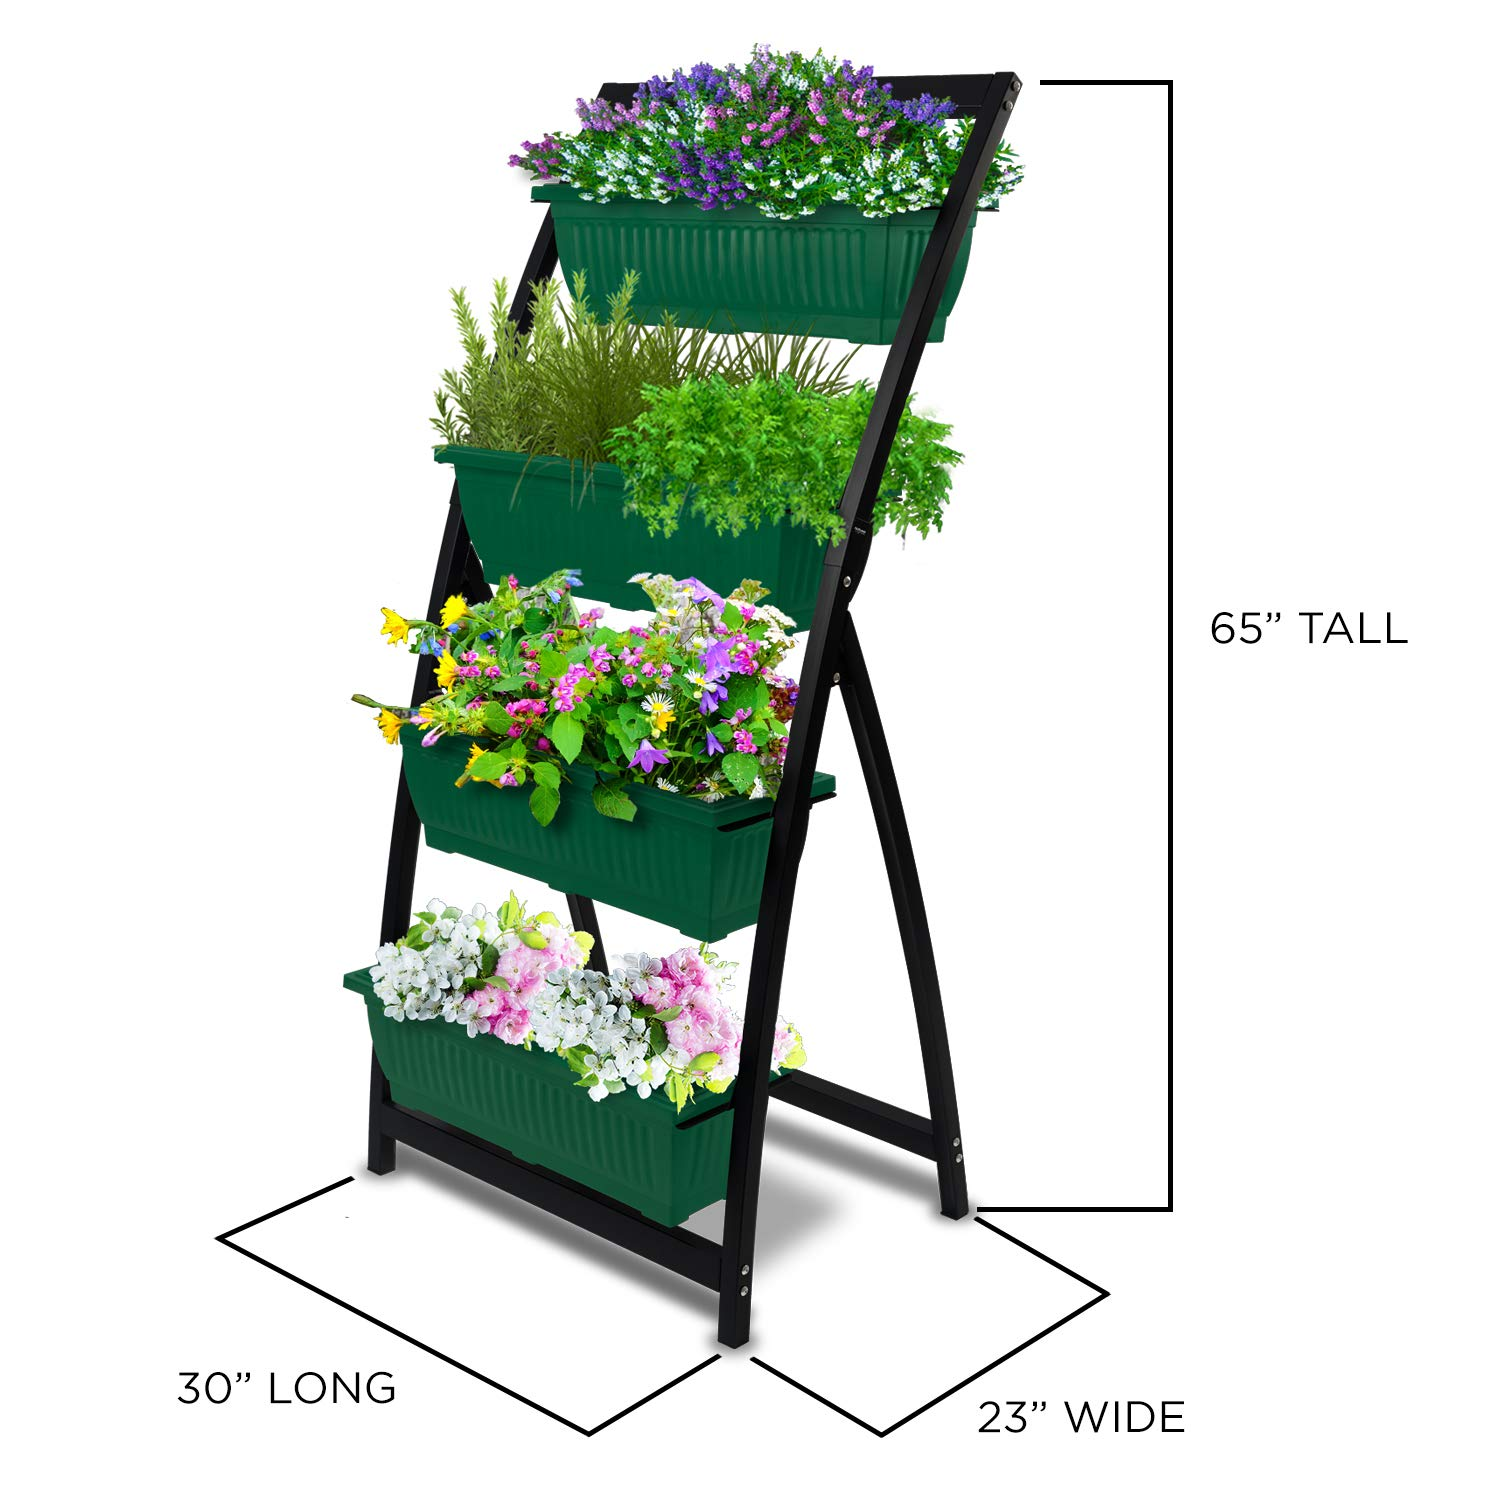 6-Ft Raised Garden Bed - Vertical Garden Freestanding Elevated Planter with 4 Container Boxes - Good for Patio or Balcony Indoor and Outdoor - Cascading Water Drainage (1-Pack/Forest Green) by Outland Living (Image #6)